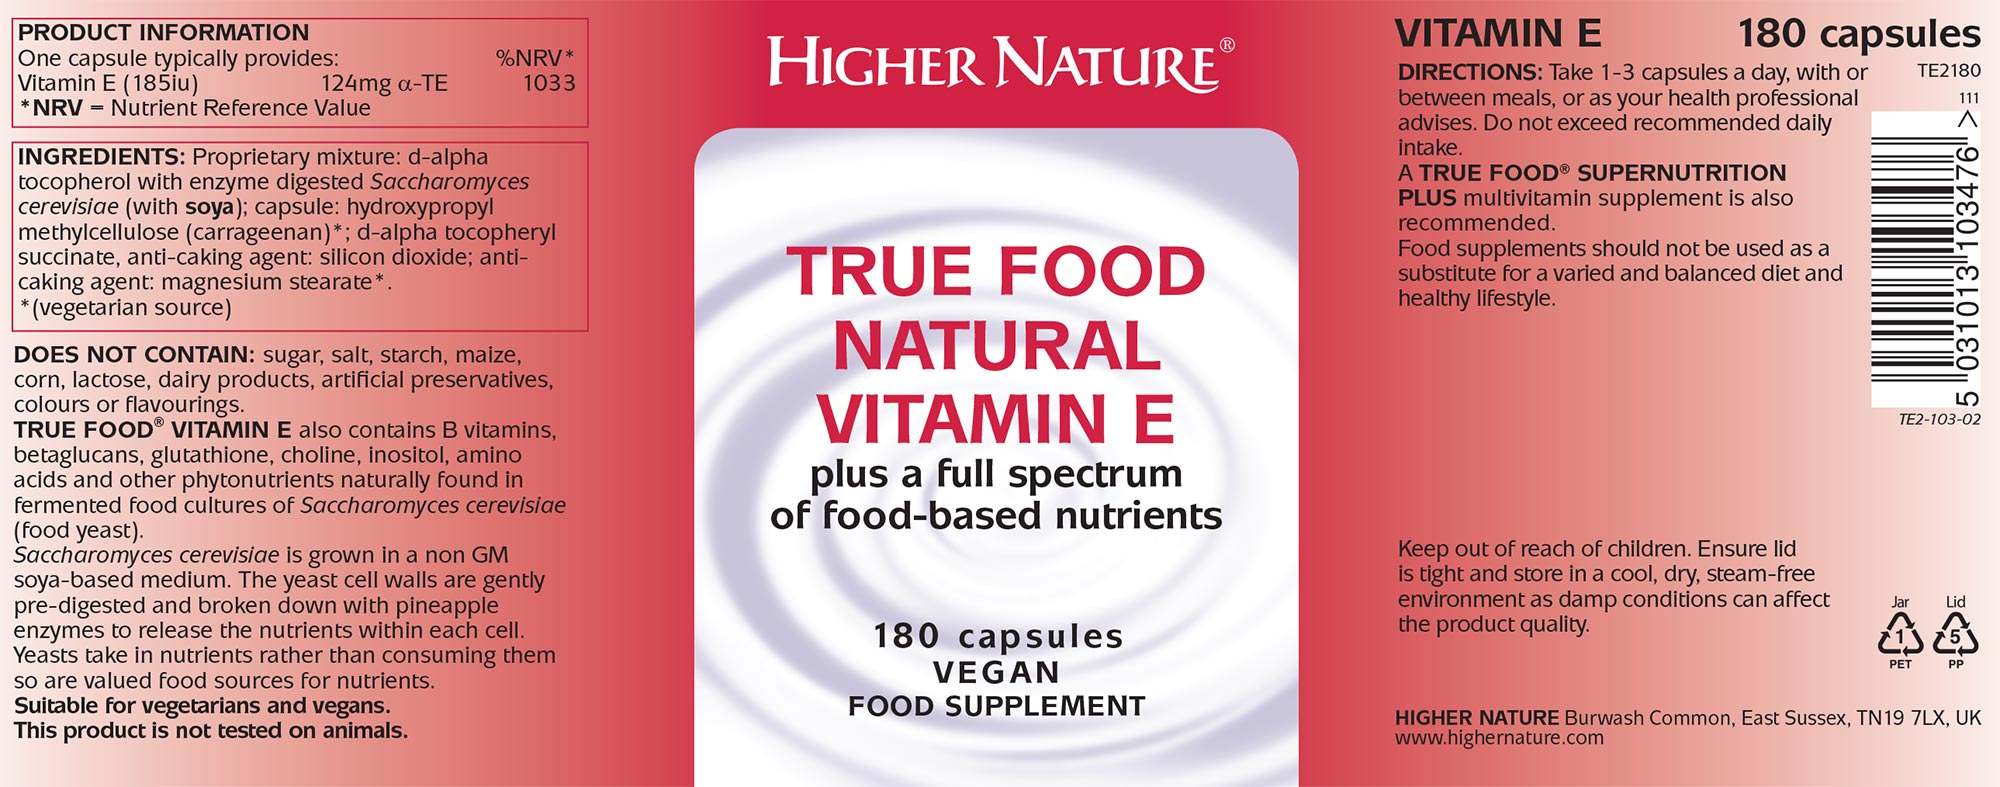 True Food Natural Vitamin E 30 Capsules 9 75 From The Finchley Clinic